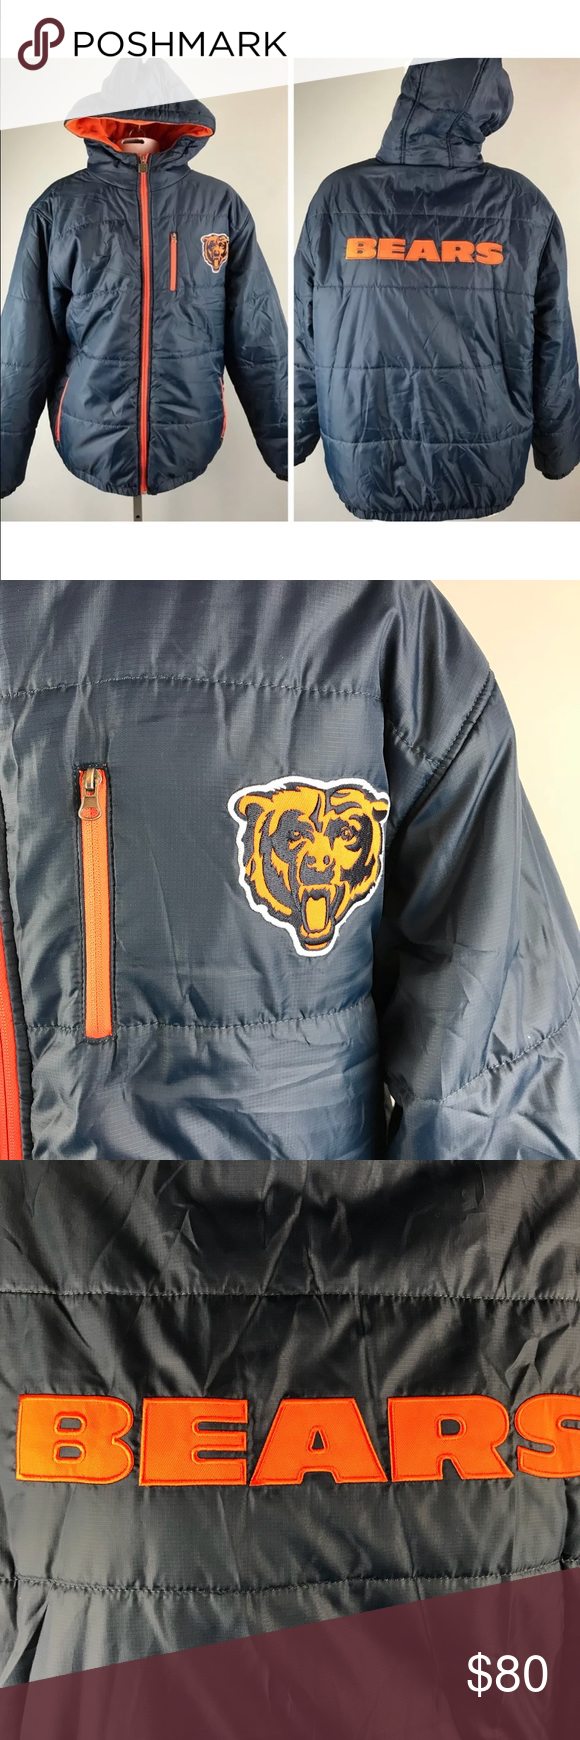 a78ad59c Chicago Bears Coat 2-in-1 NFL Winter Jacket Hood Chicago Bears Mens ...